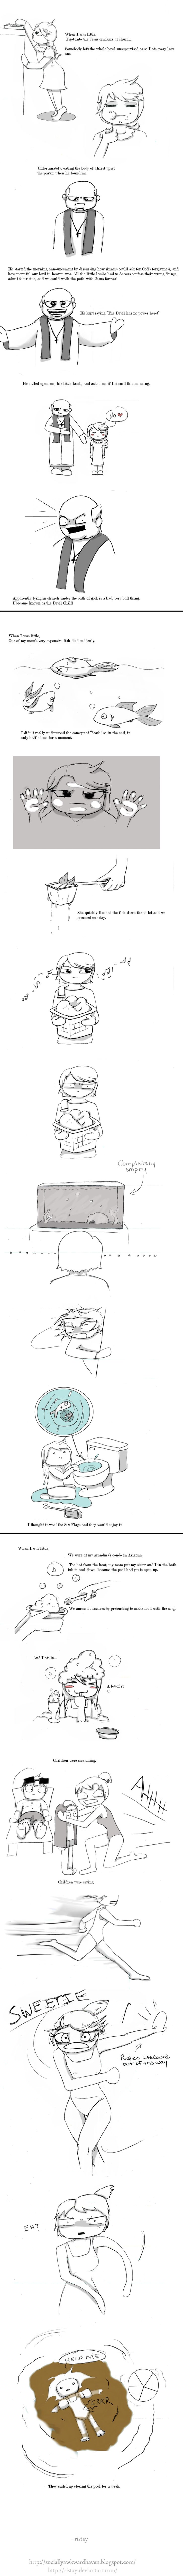 When I was little, I got into the Jesus crackers at church.... Part II by Ristay on DeviantArt